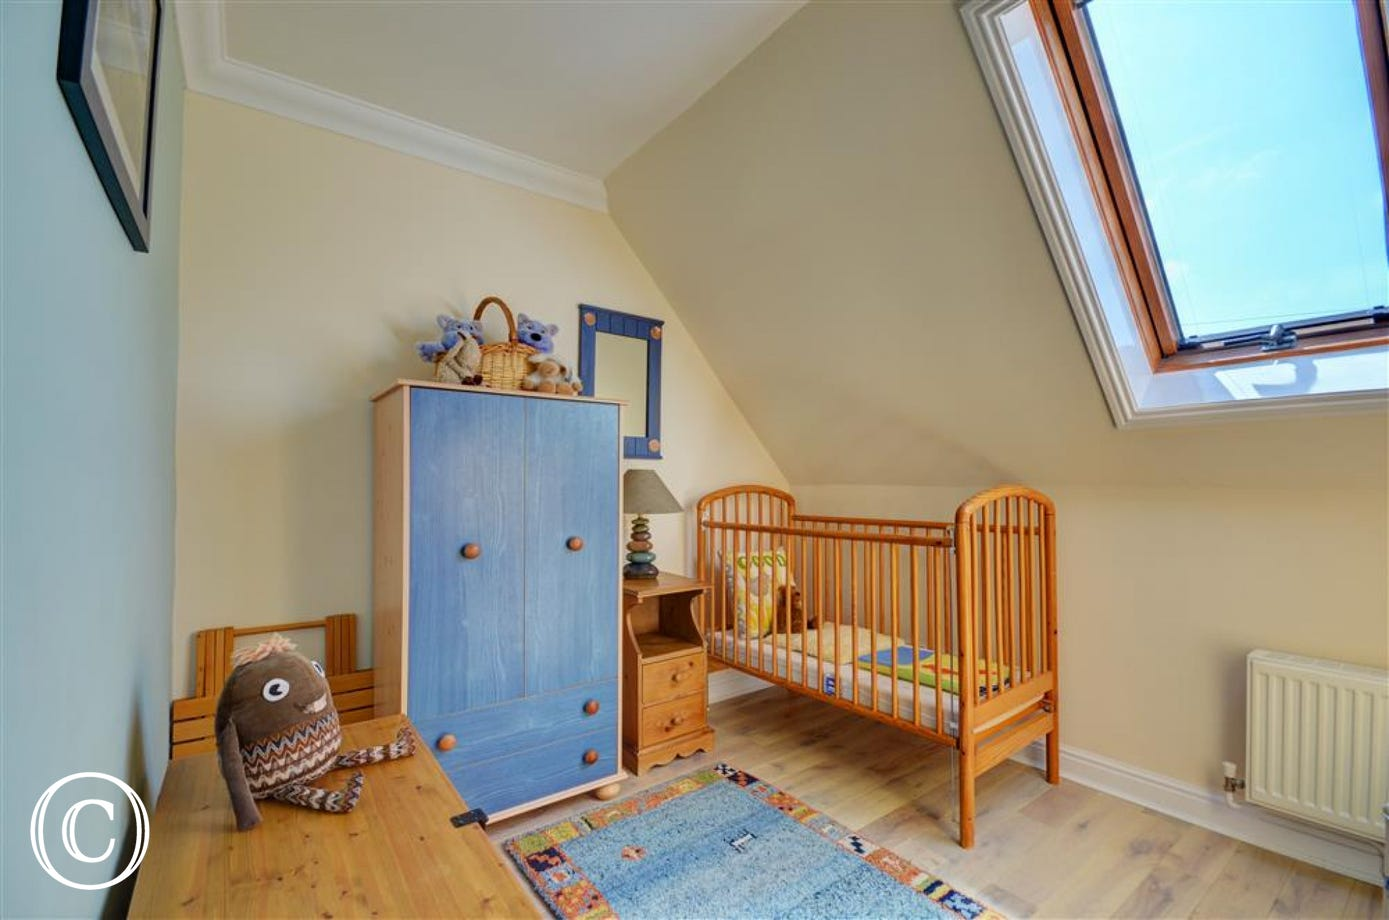 Bedroom three has a full sized cot